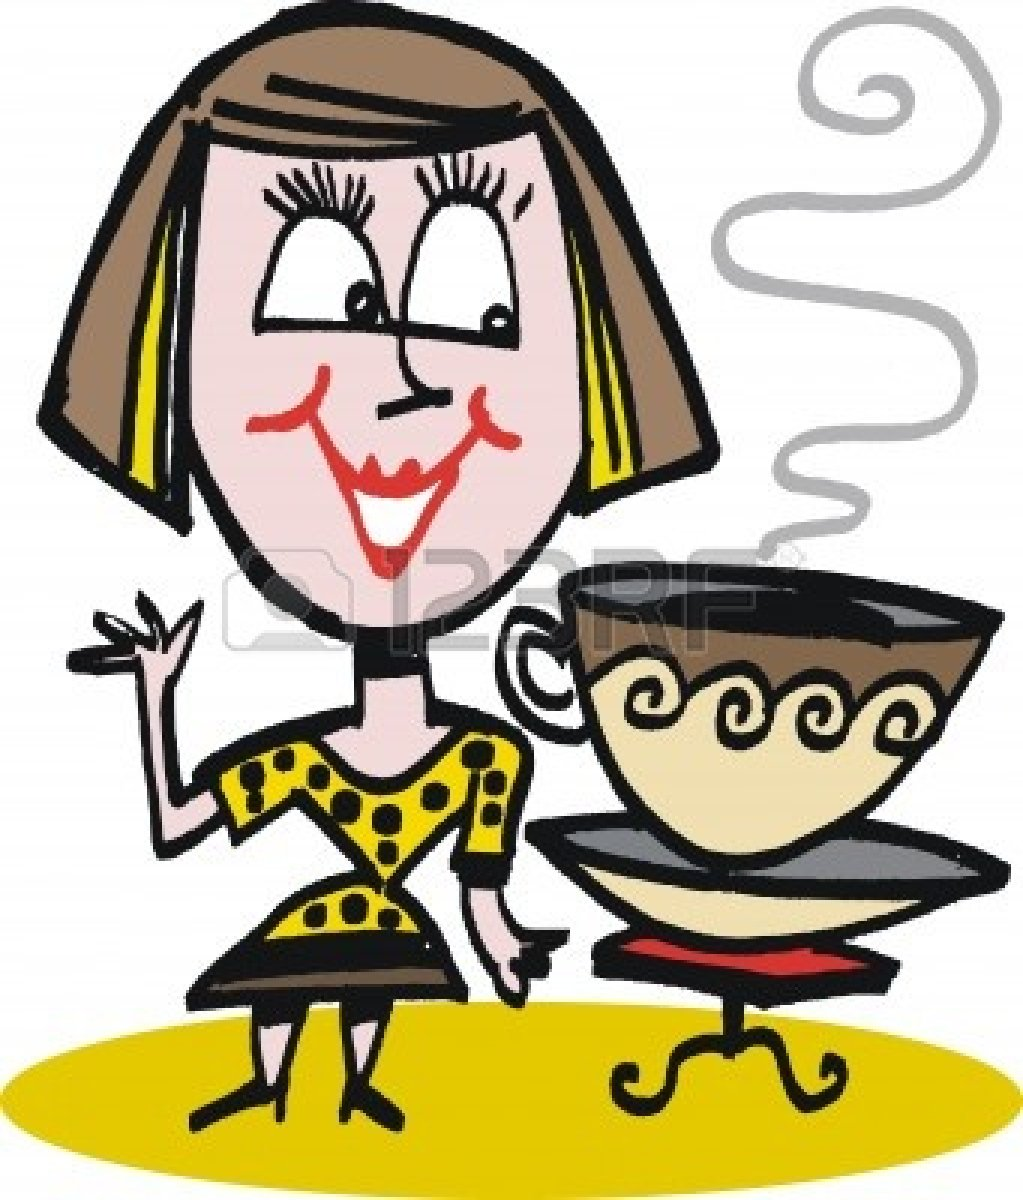 drinking coffee images 10045536 cartoon of woman drinking coffee.jpg